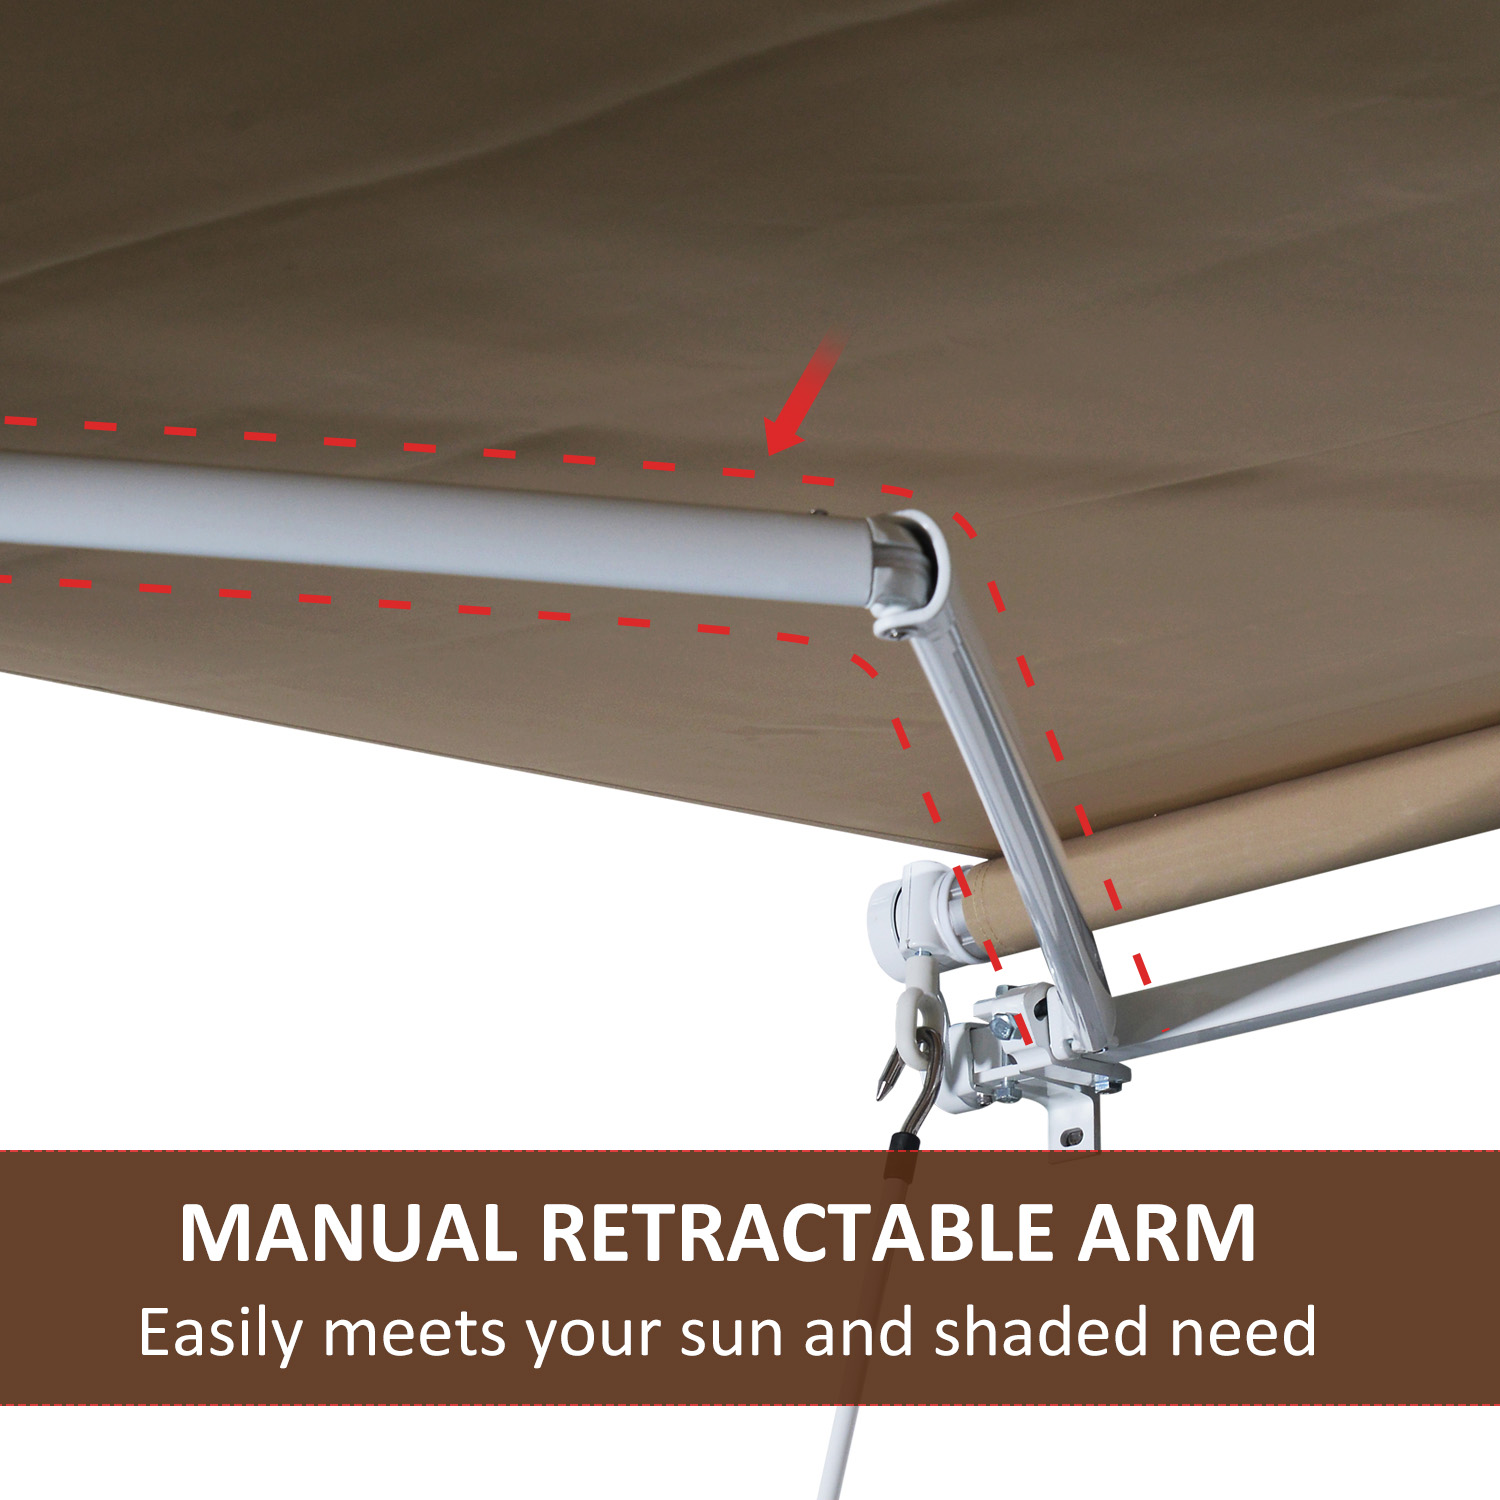 12x8-2ft-Manual-Retractable-Patio-Awning-Window-Door-Sunshade-Shelter